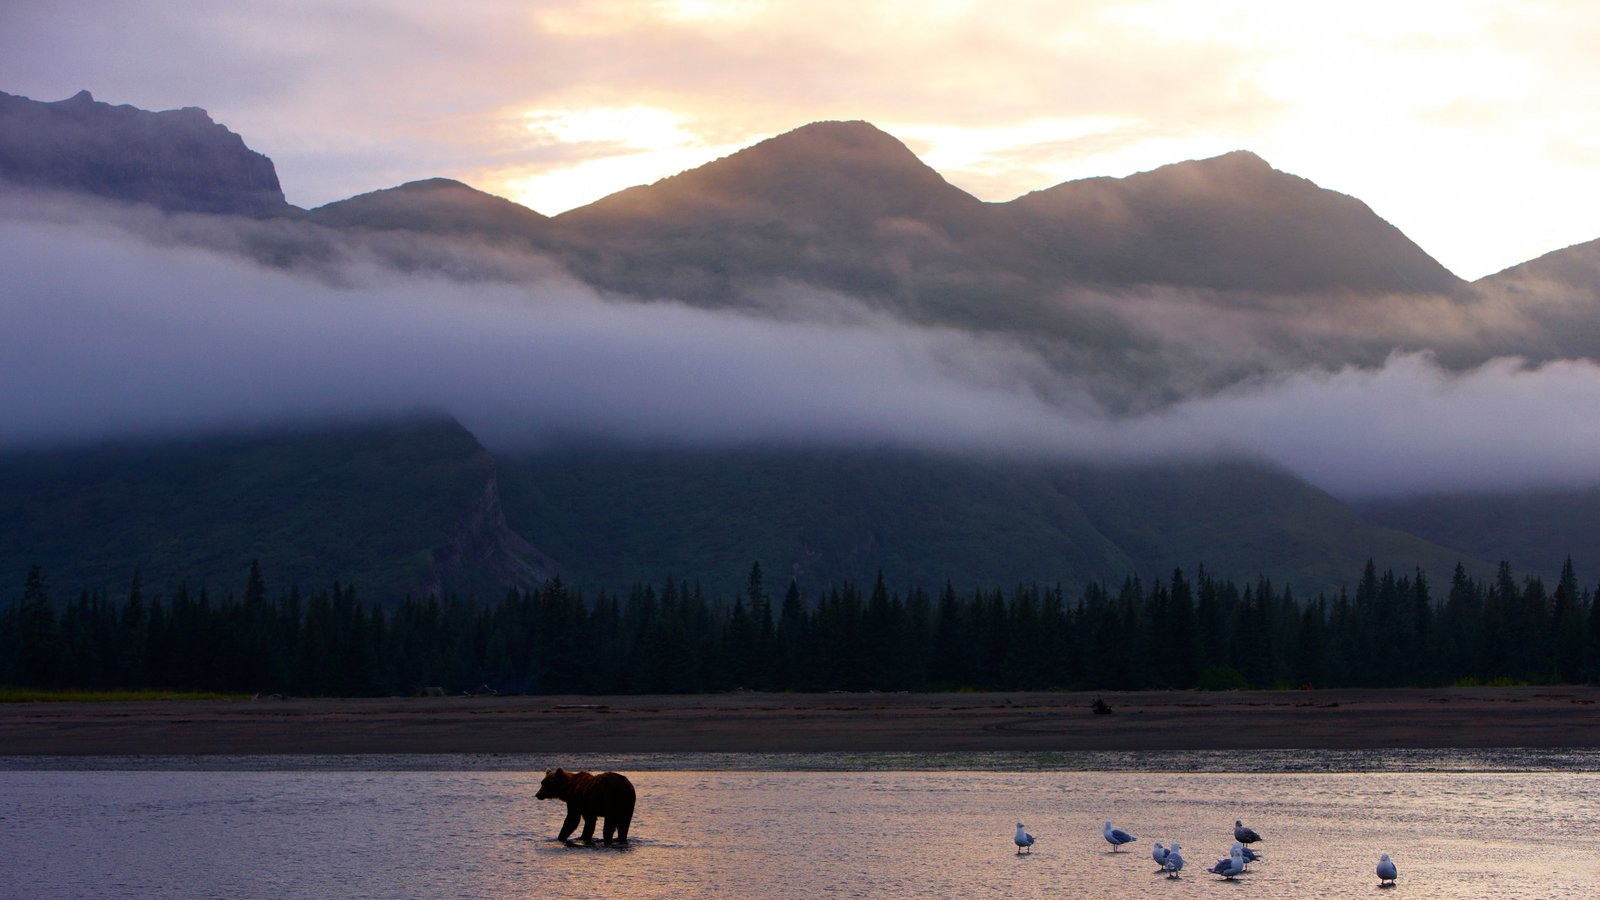 Lake Clark National Park and Preserve which includes mist or fog and dangerous animals